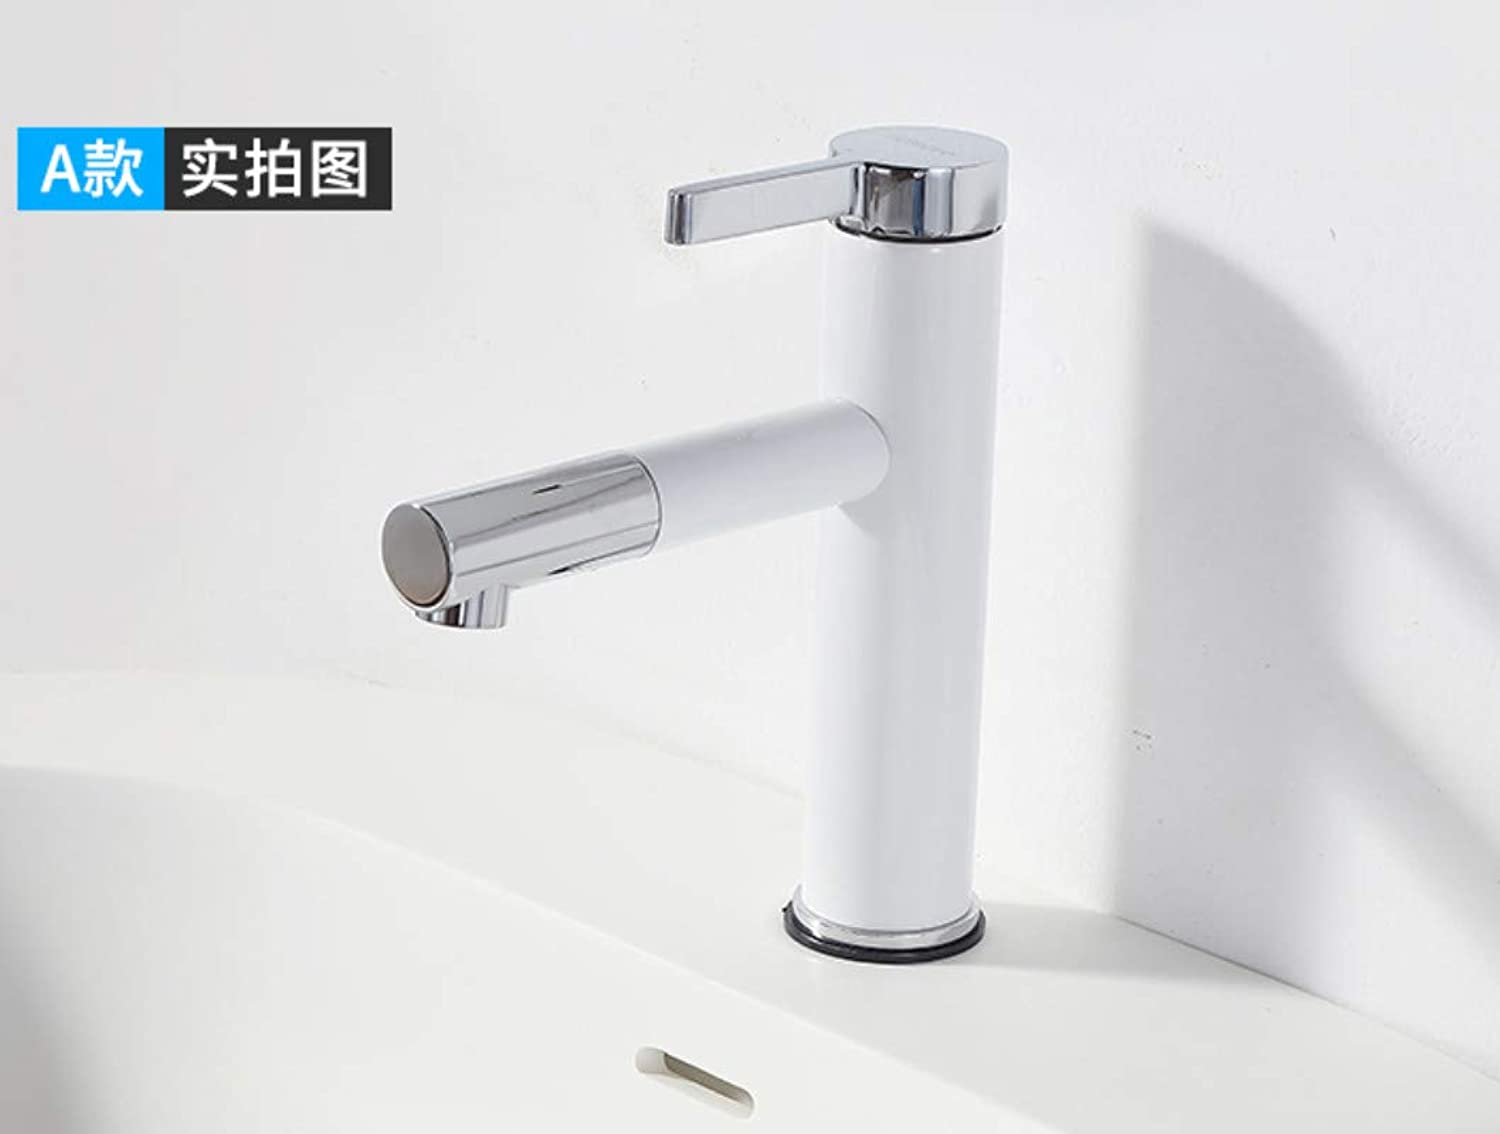 ROKTONG Taps Copper Bathroom Faucet Single Hole Basin Faucet Hot And Cold Basin Faucet redating White Faucet